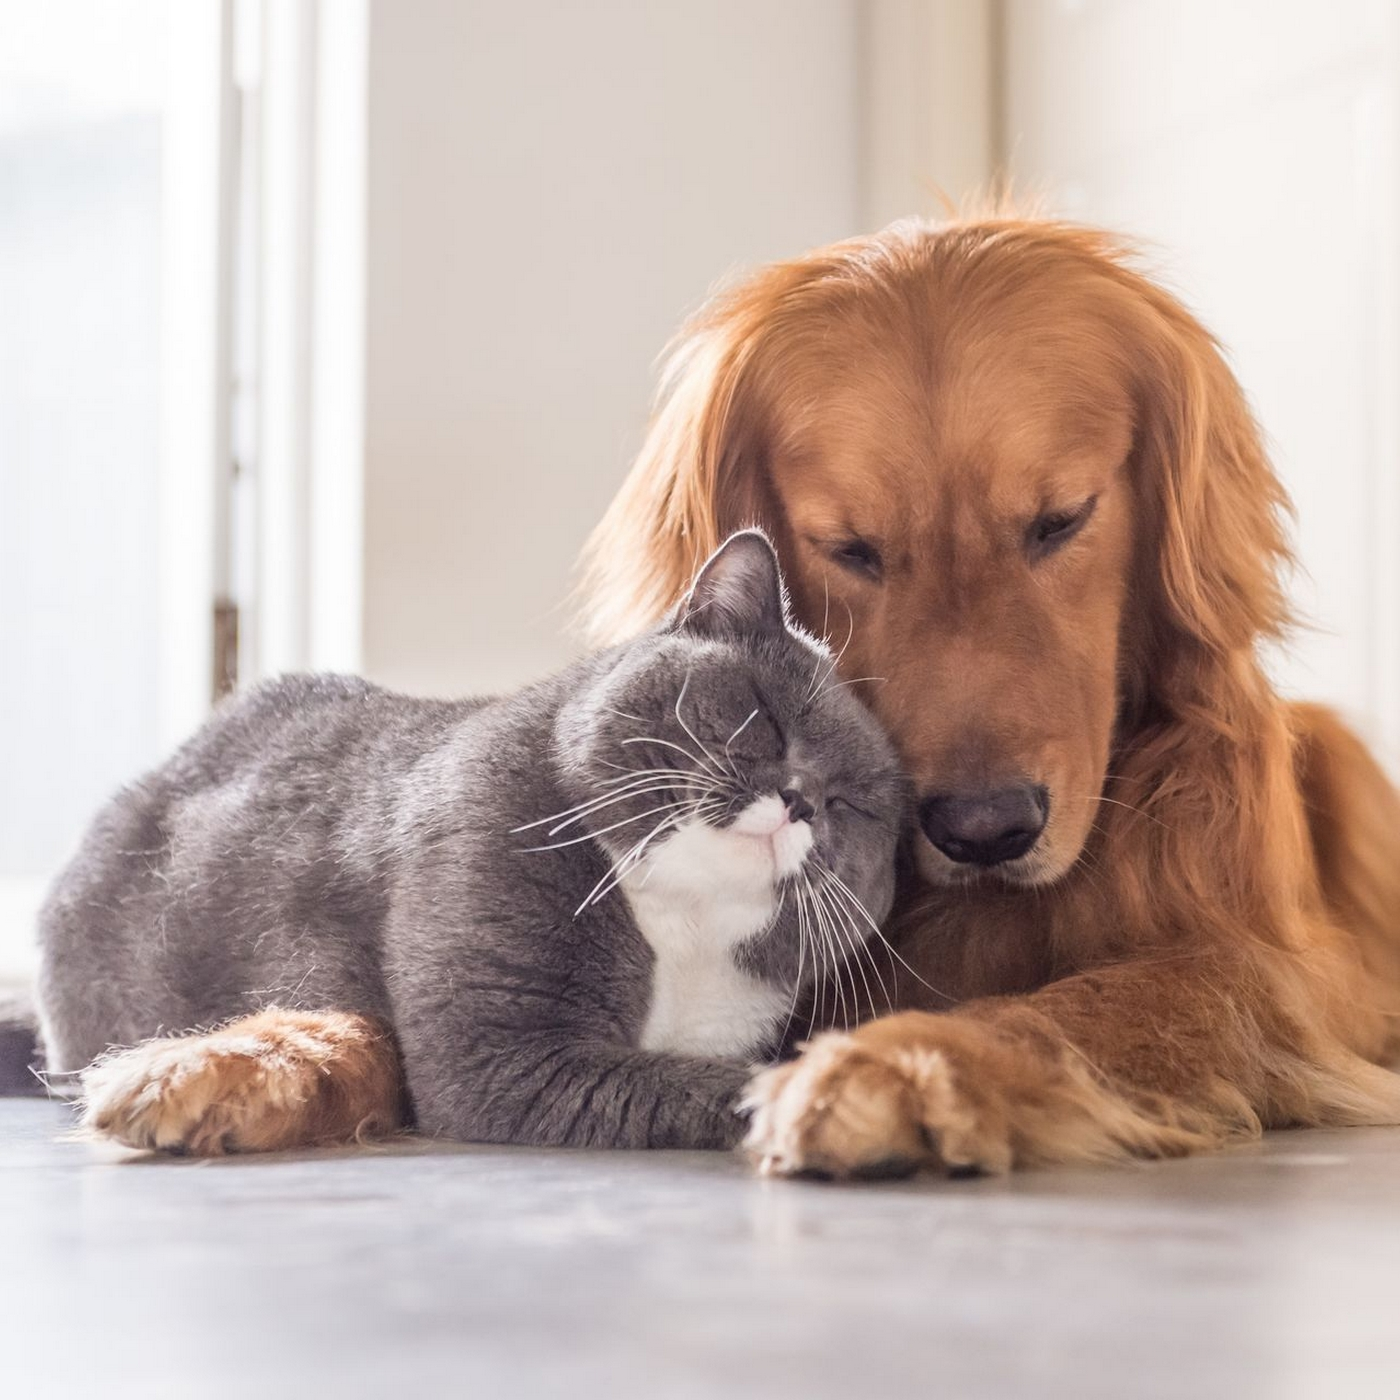 Image of dog and cat laying next to each other